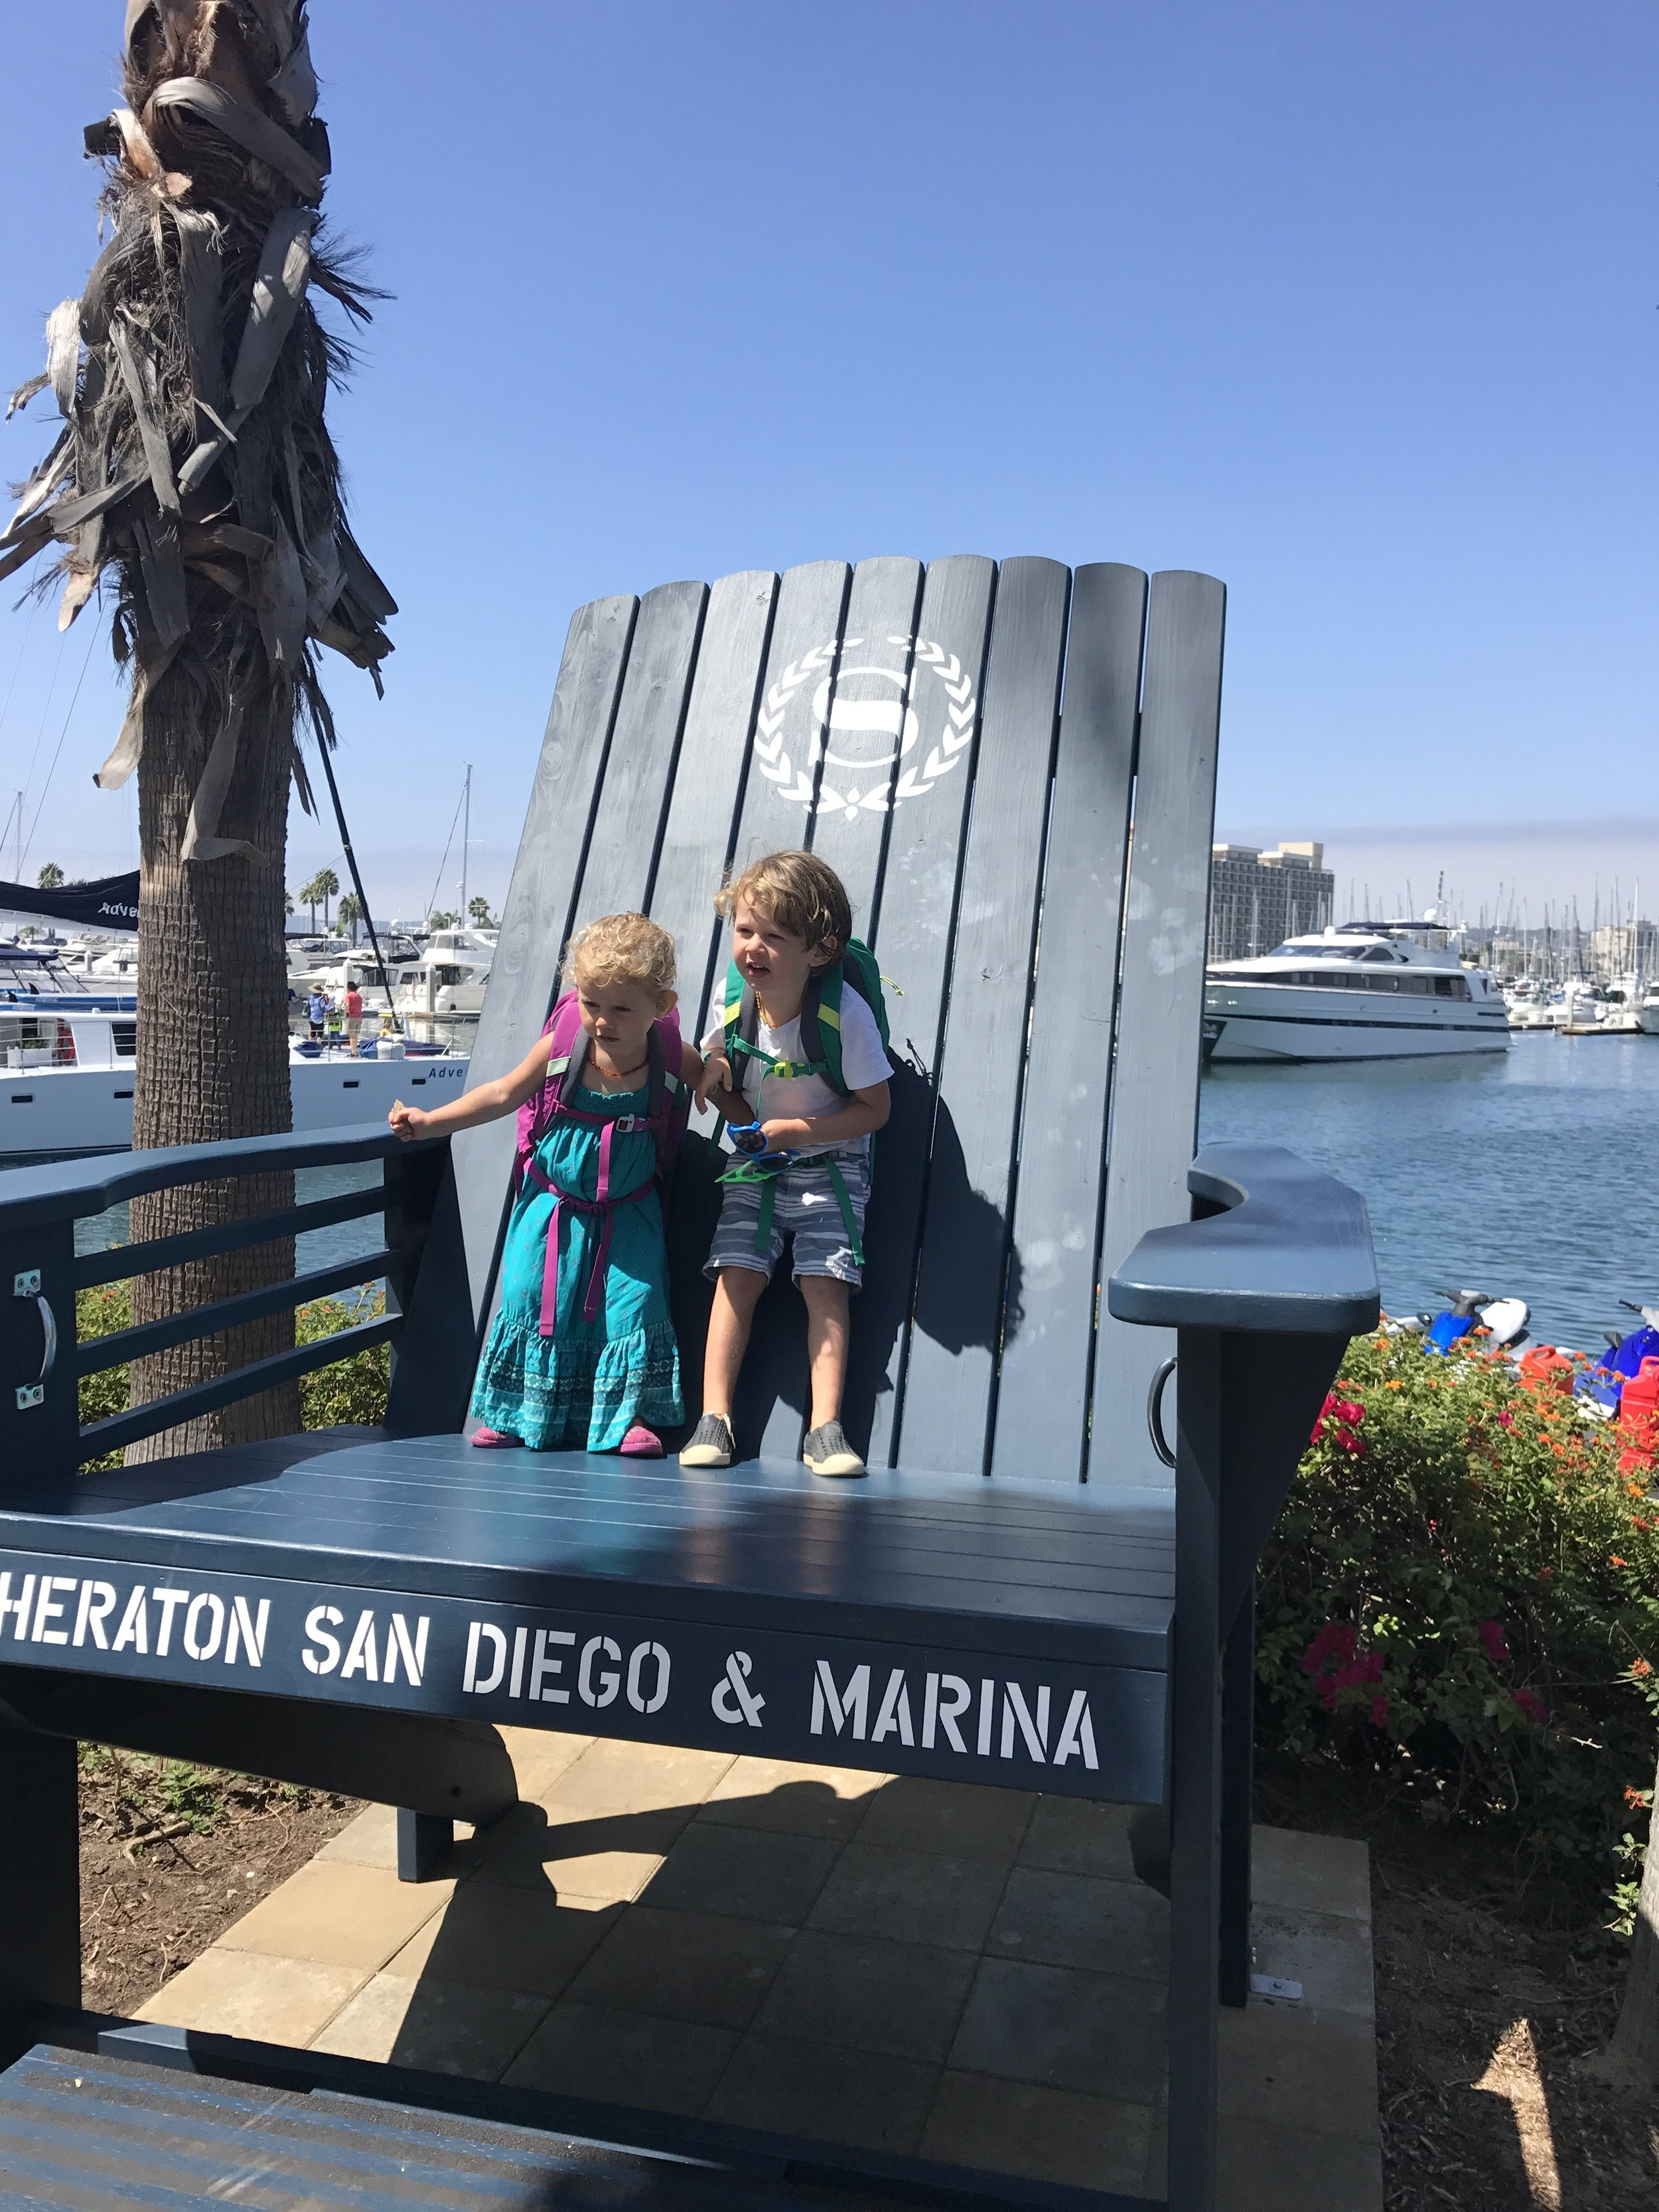 San Diego Bay and thier REI Tarn12 backpacks